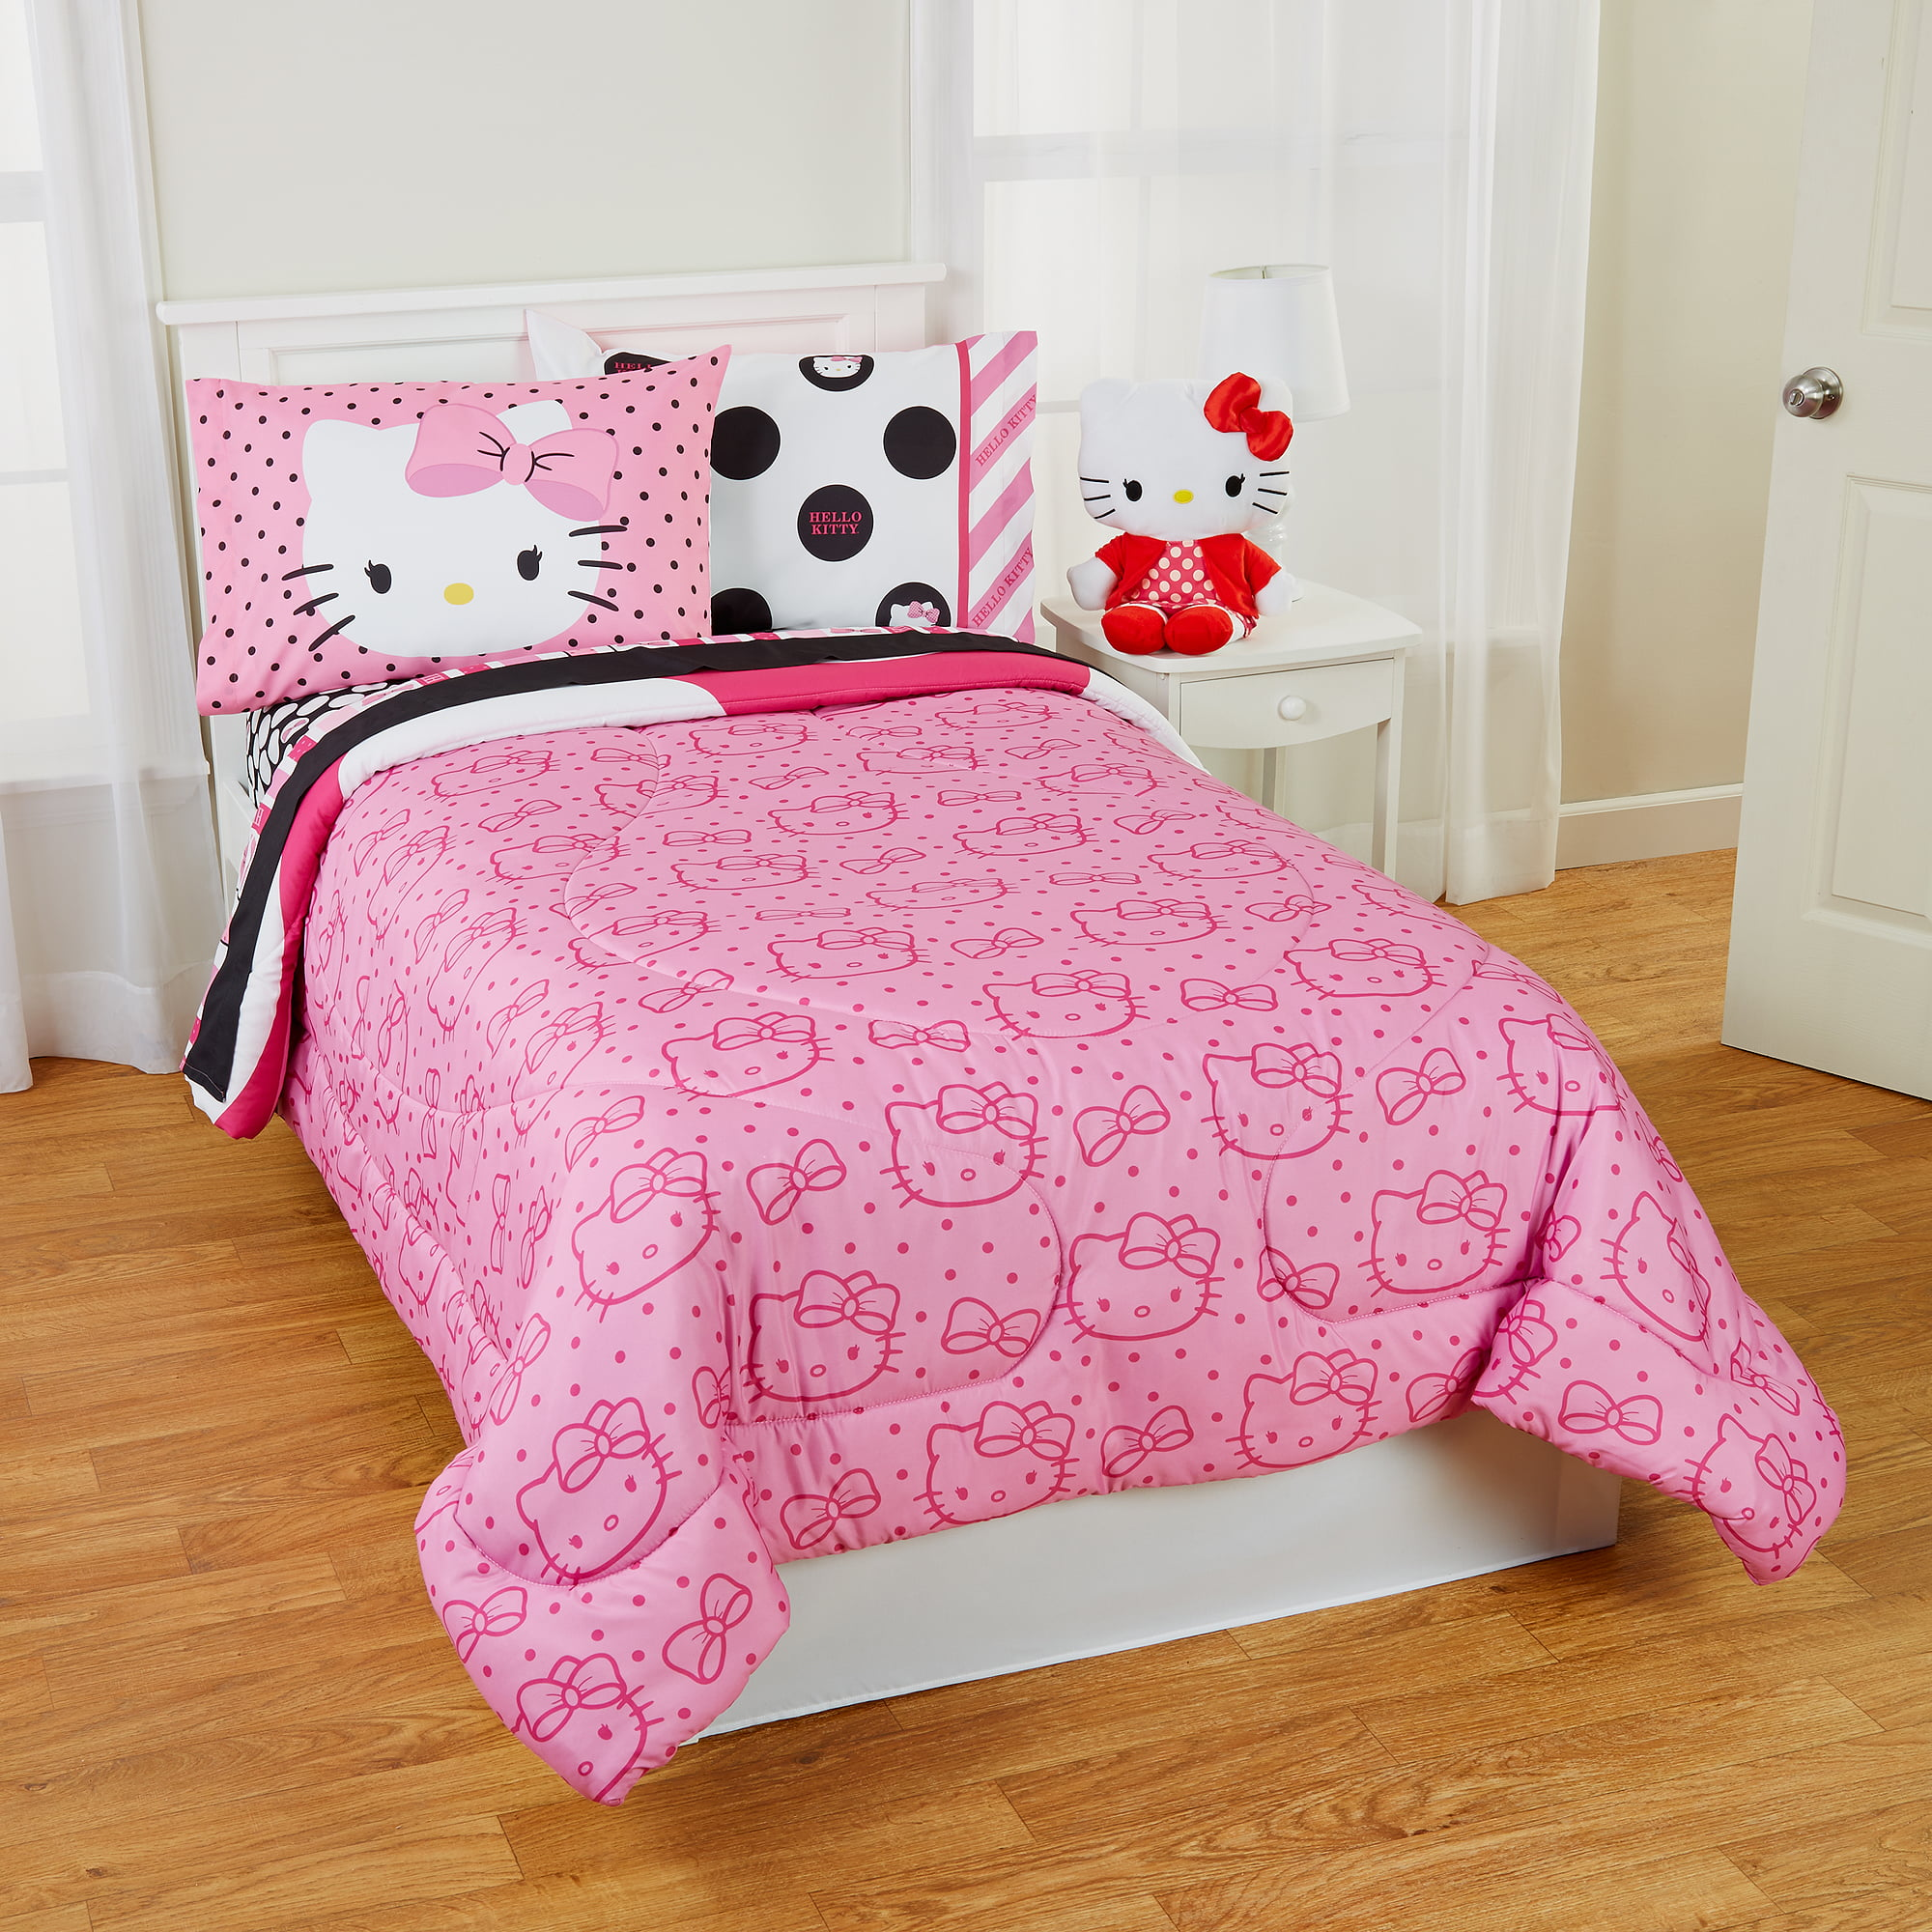 Pink hello kitty bedsheet - Hello Kitty Dots Beautiful Twin Full Reversible Bedding Comforter Walmart Com